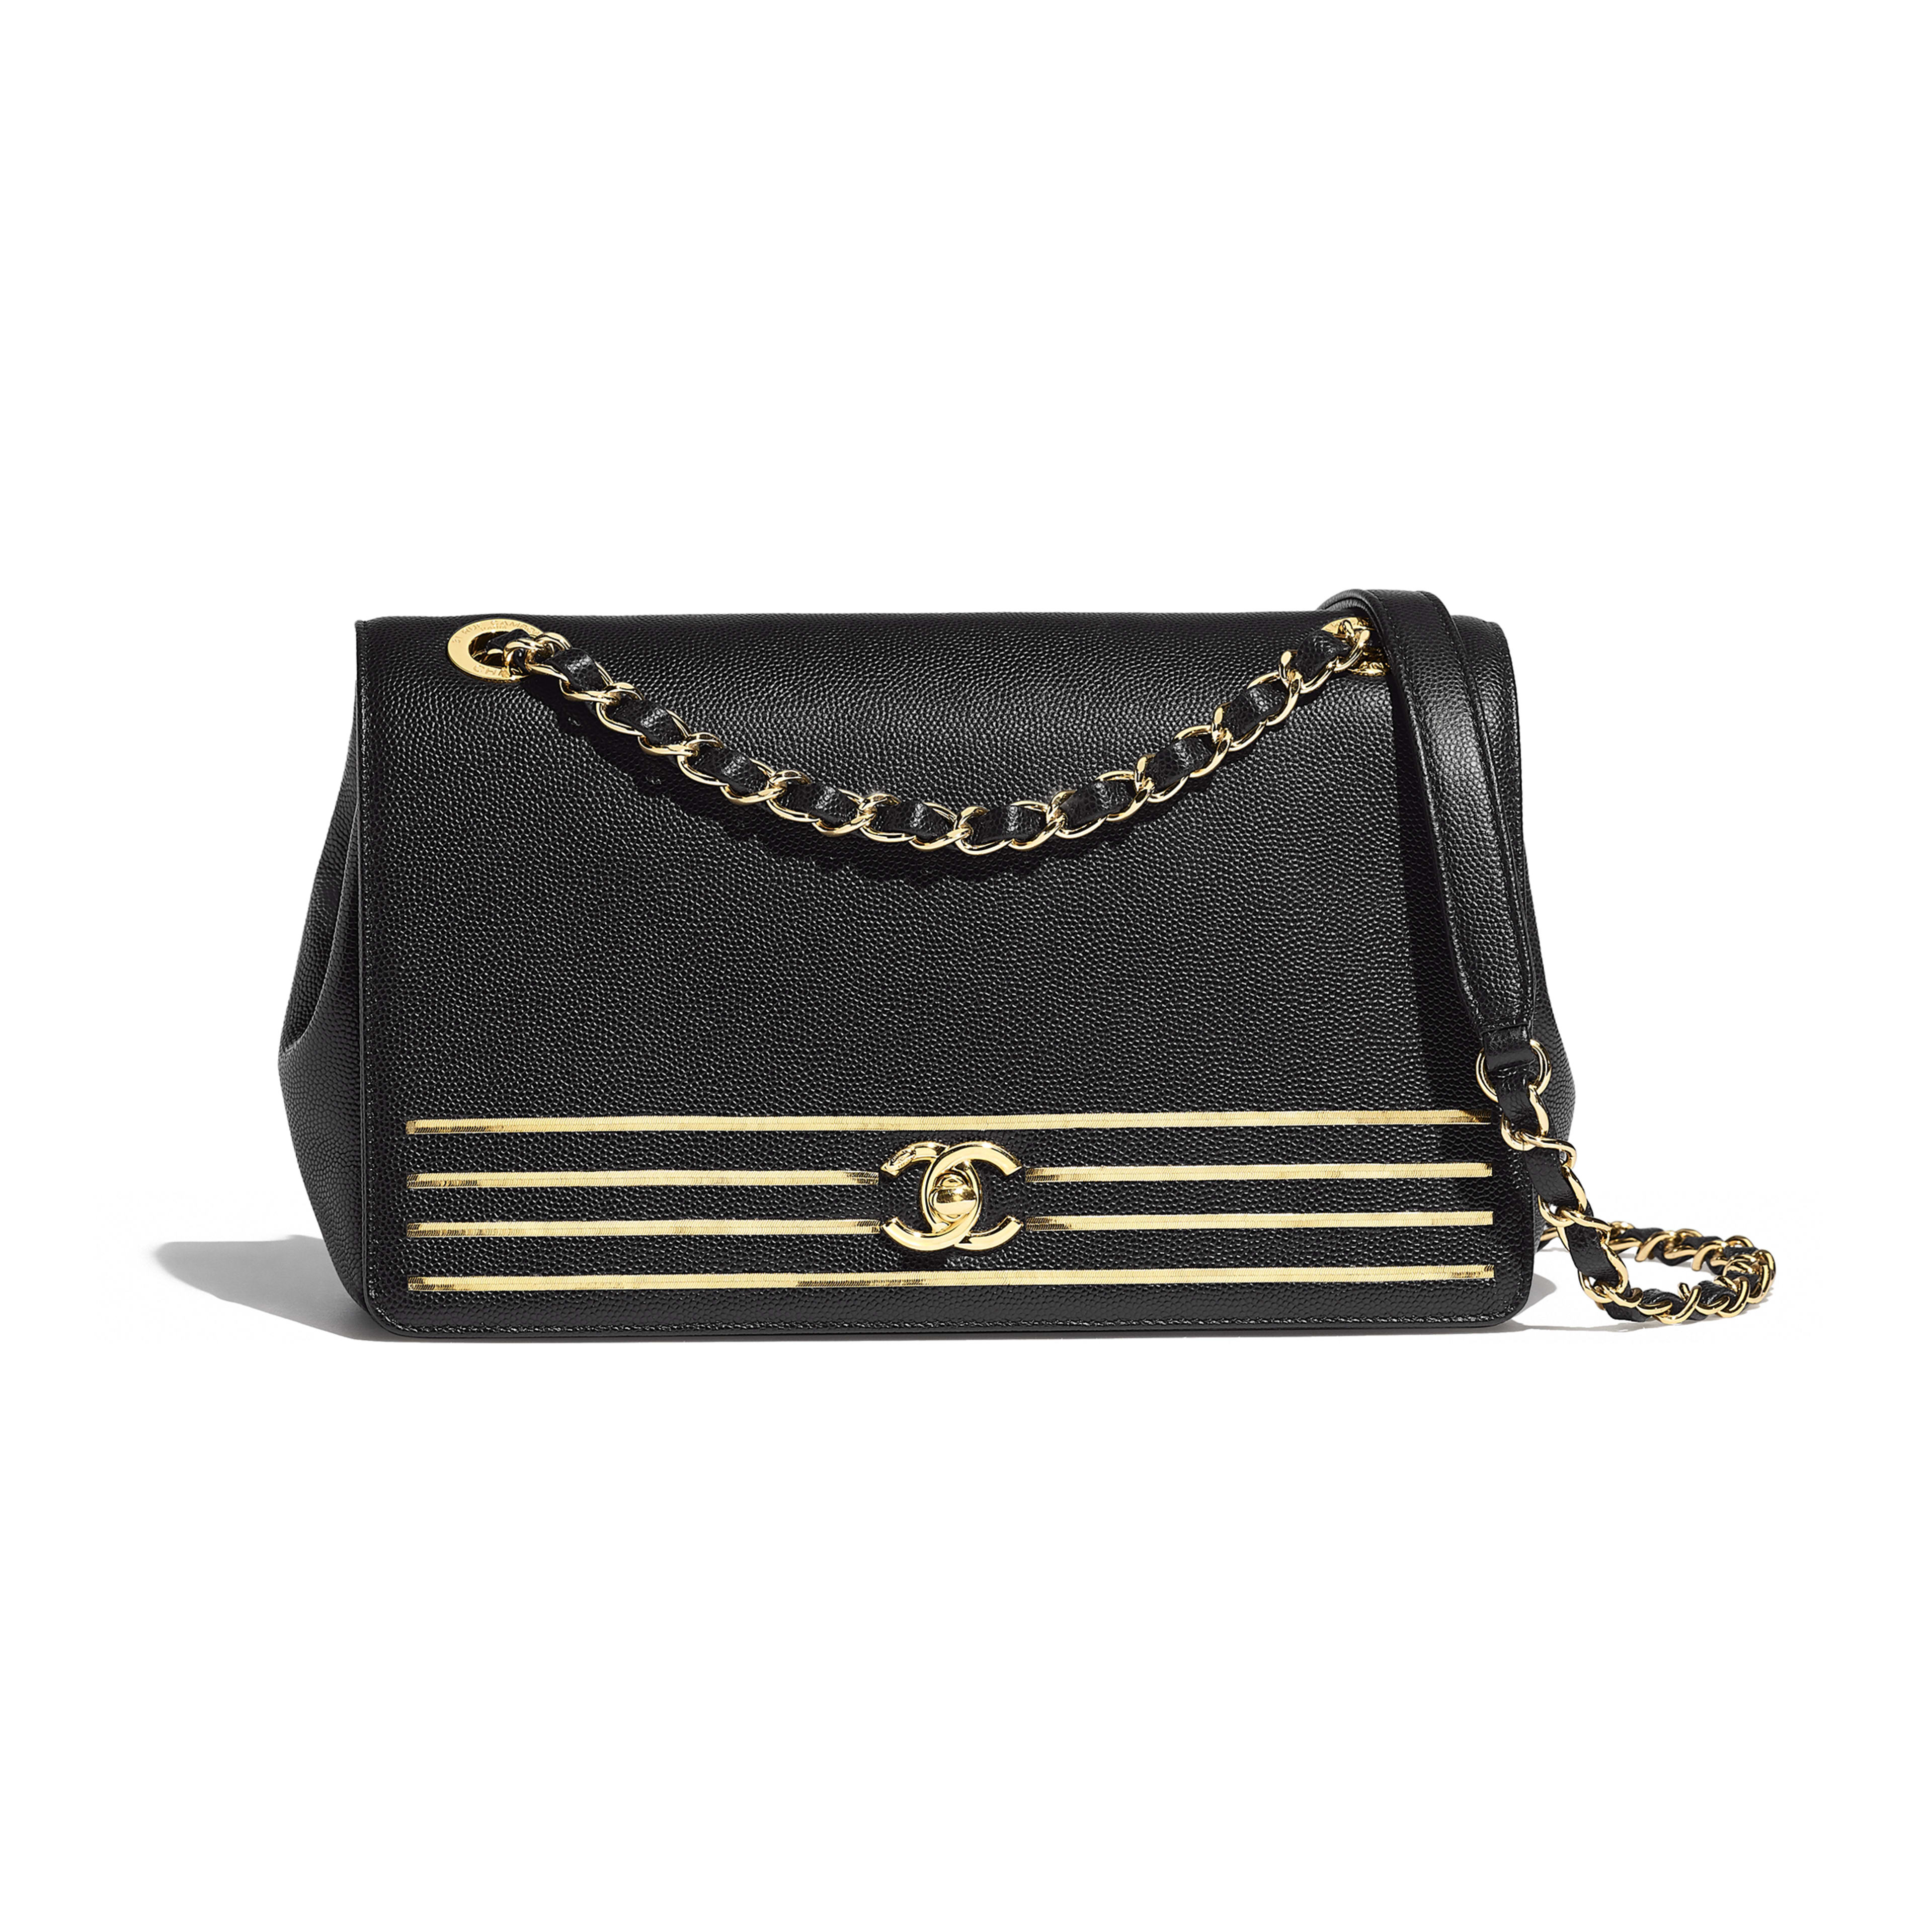 Flap Bag - Black - Embroidered Grained Calfskin & Gold-Tone Metal - Default view - see full sized version